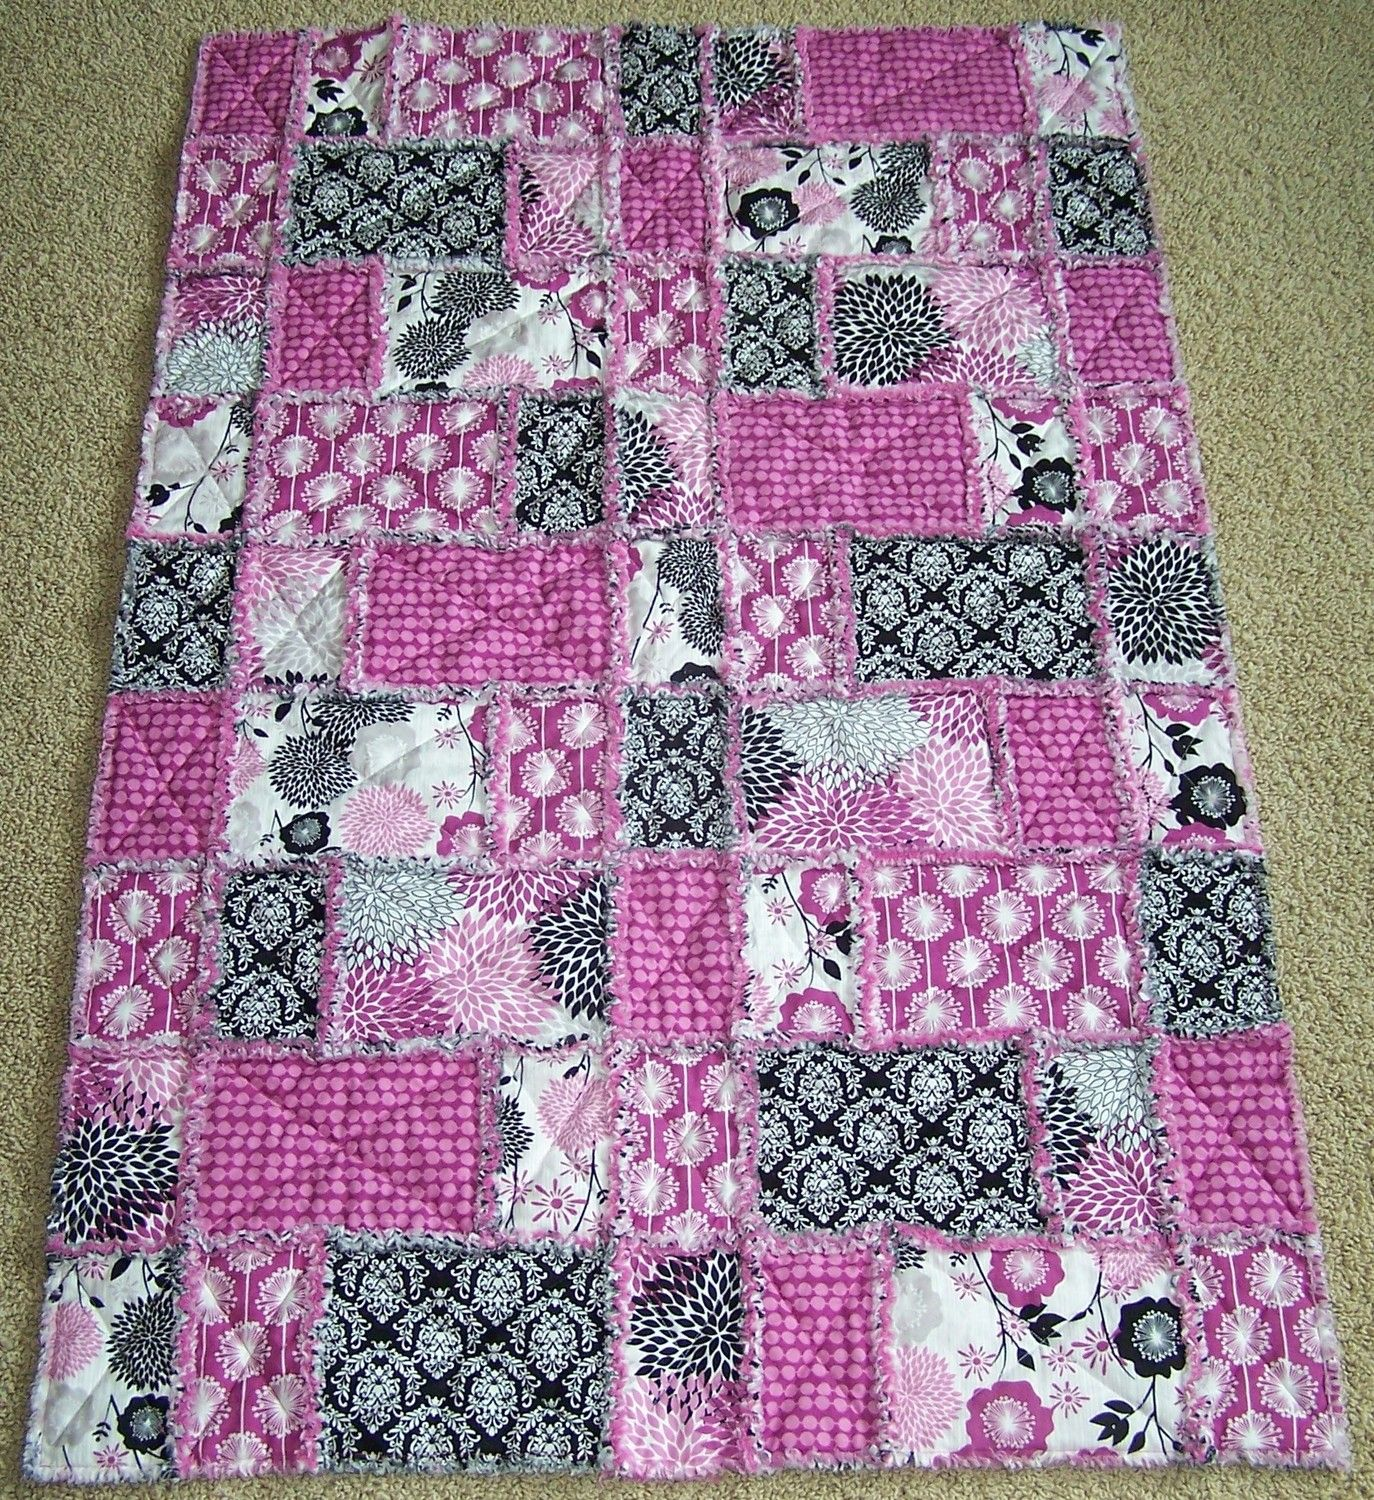 Rag quilt idea---love these colors!!!! This is kind of a different ... : quilt color ideas - Adamdwight.com